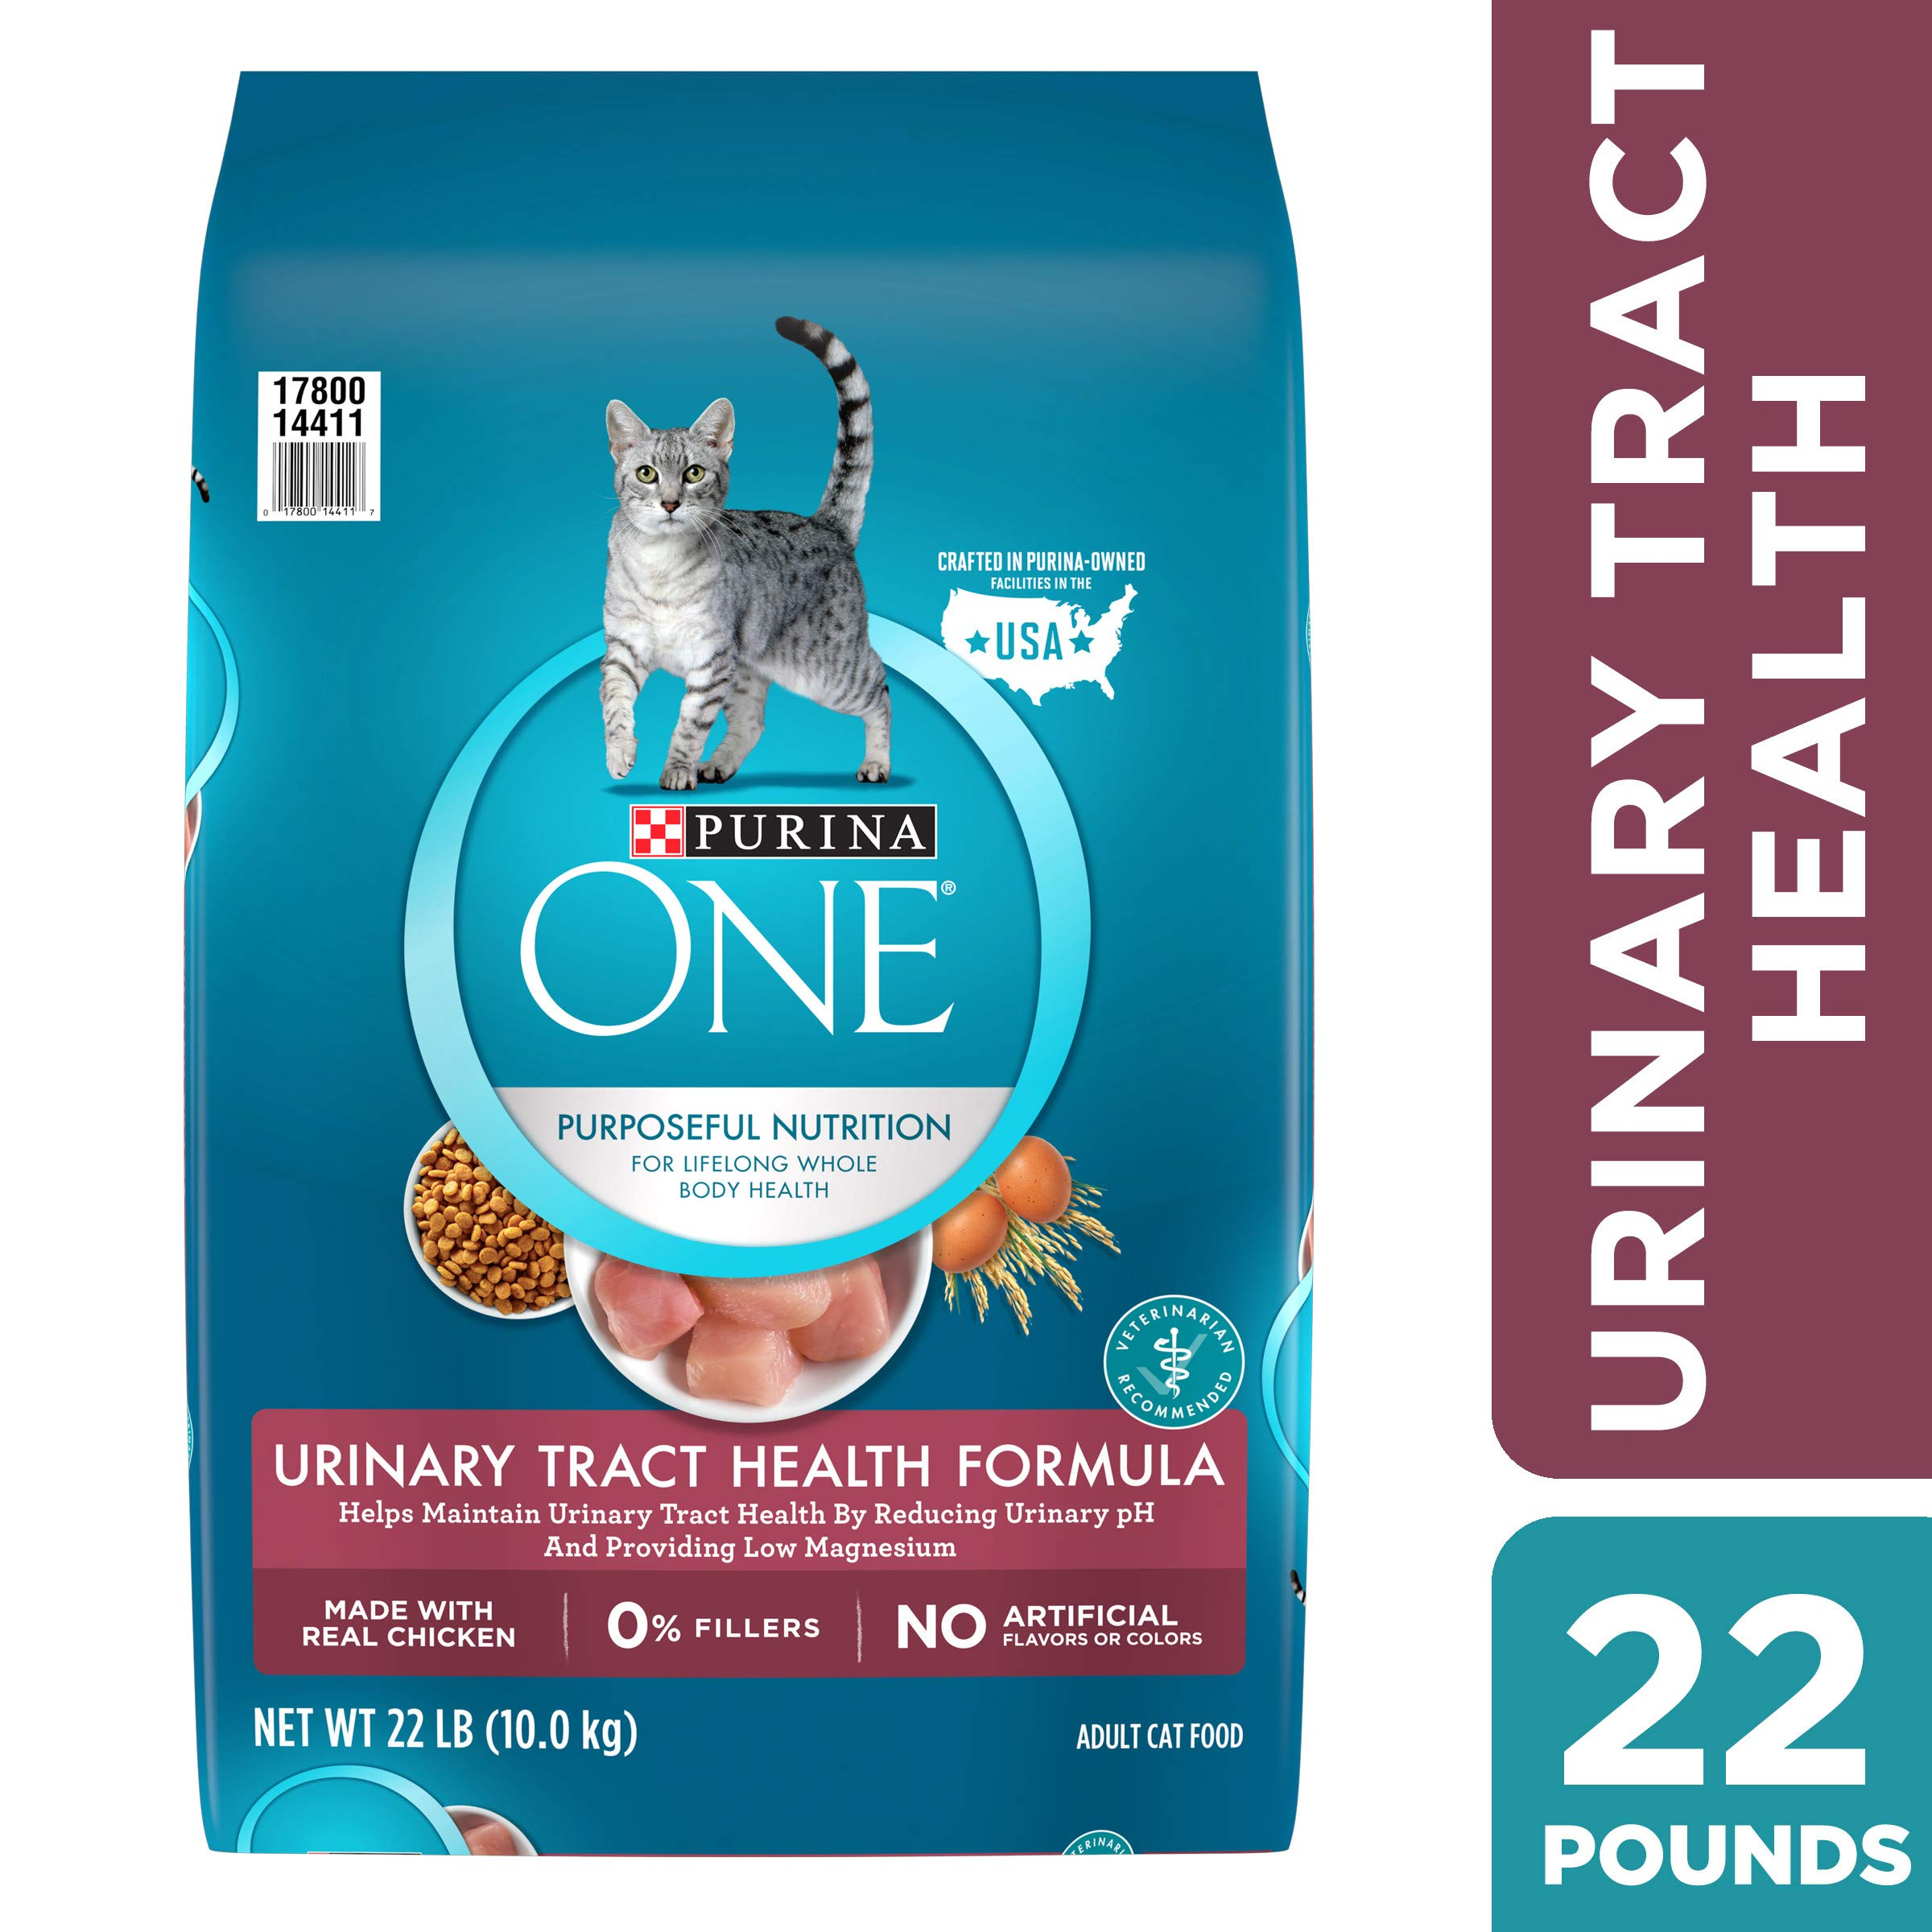 Purina ONE Urinary Tract Health Dry Cat Food, Urinary Tract Health Formula - 22 lb. Bag by Purina ONE